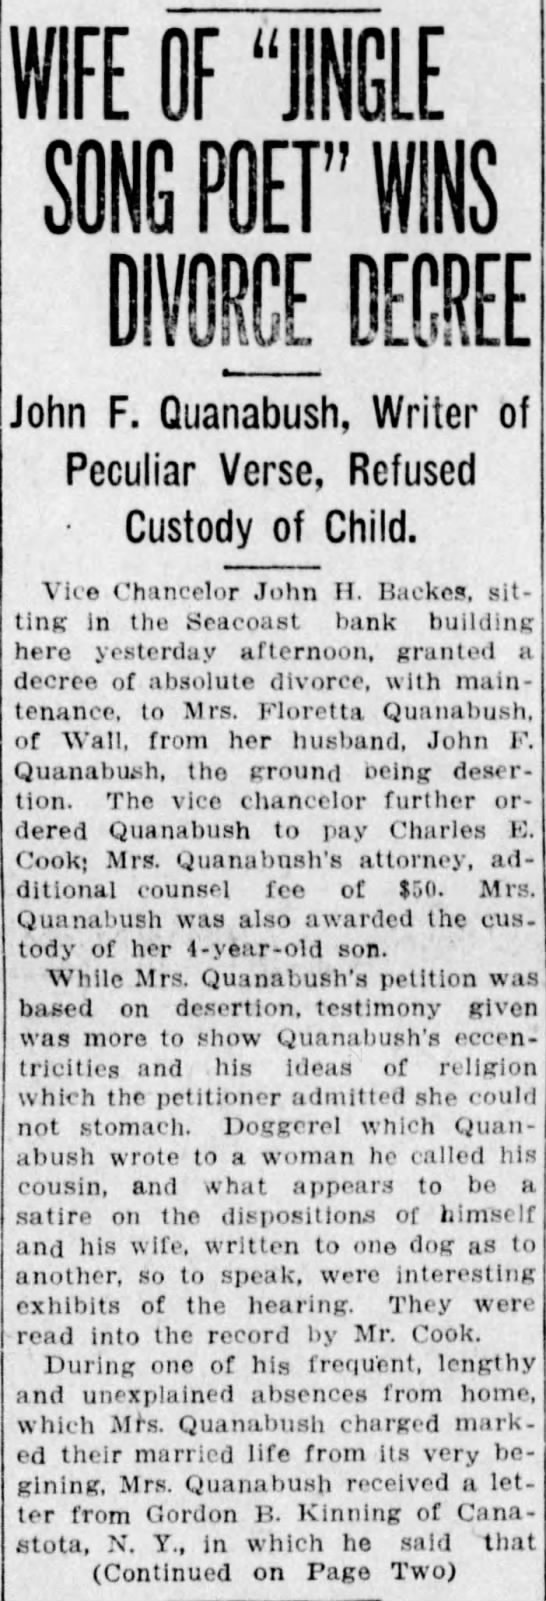 Published in Asbury Park Press; Saturday, 20 September 1913; Page 1